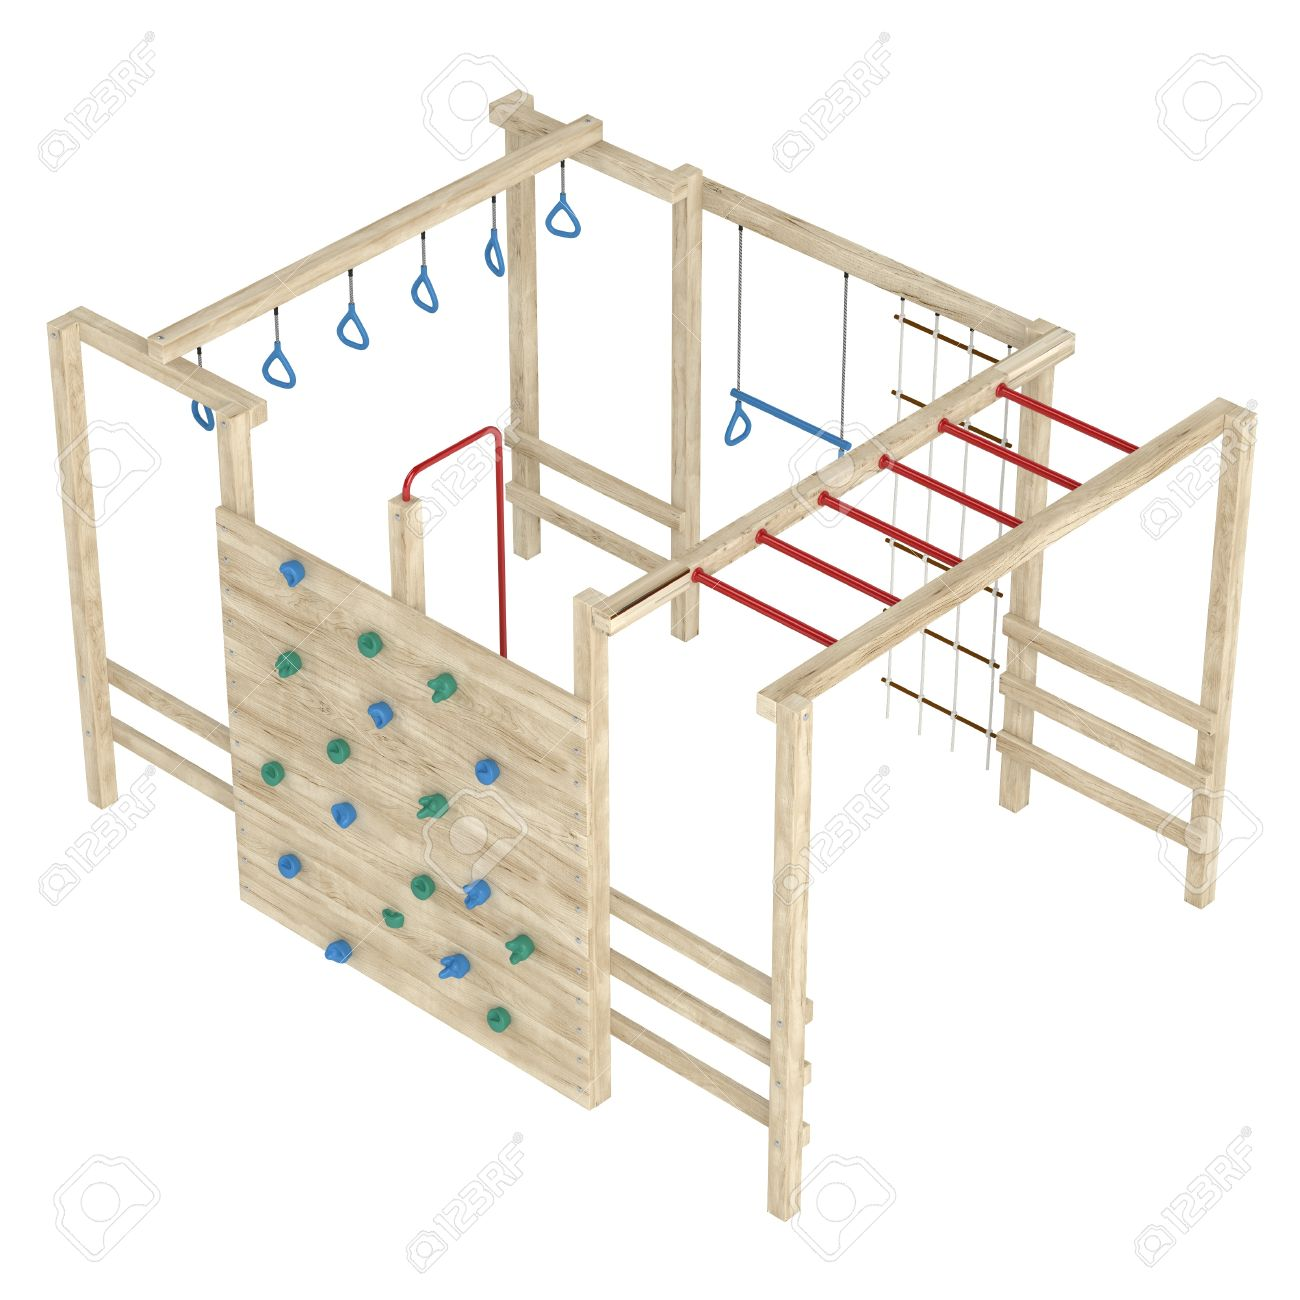 Wooden Jungle Gym Or Climbing Frame With Handholds, Footholds And ...